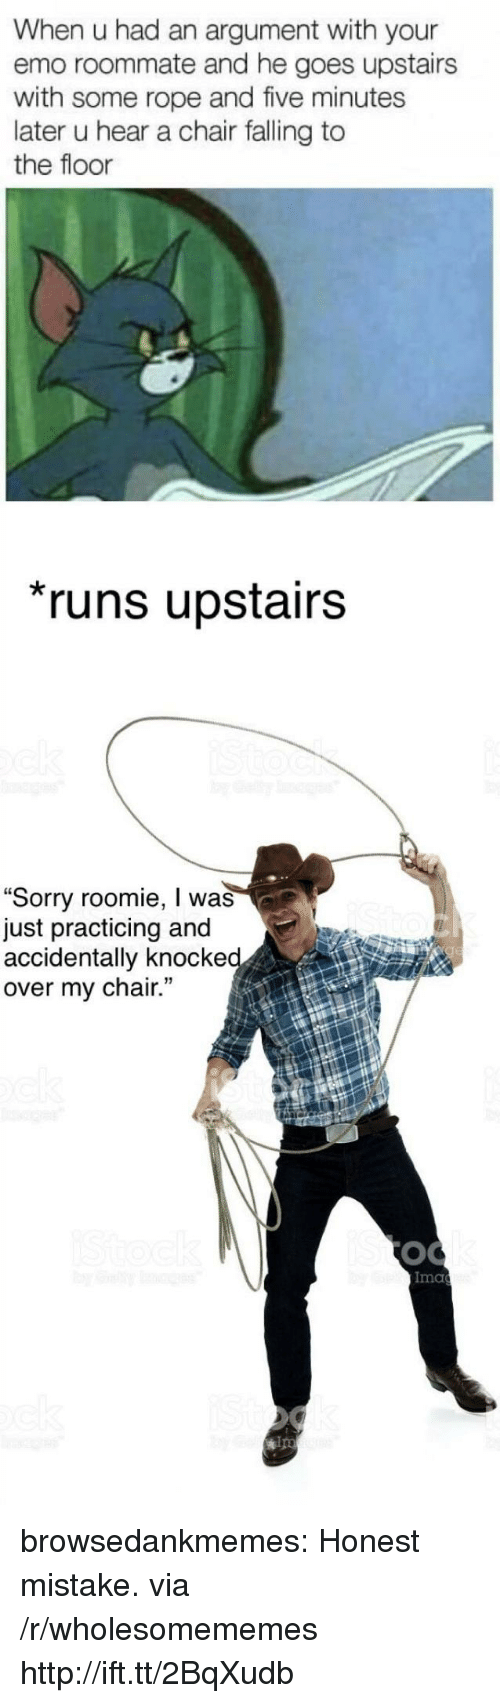 """roomie: When u had an argument with your  emo roommate and he goes upstairs  with some rope and five minutes  later u hear a chair falling to  the floor  runs upstairs  """"Sorry roomie, I was  just practicing and  accidentally knocke  over my chair.  Ima  ips browsedankmemes:  Honest mistake. via /r/wholesomememes http://ift.tt/2BqXudb"""